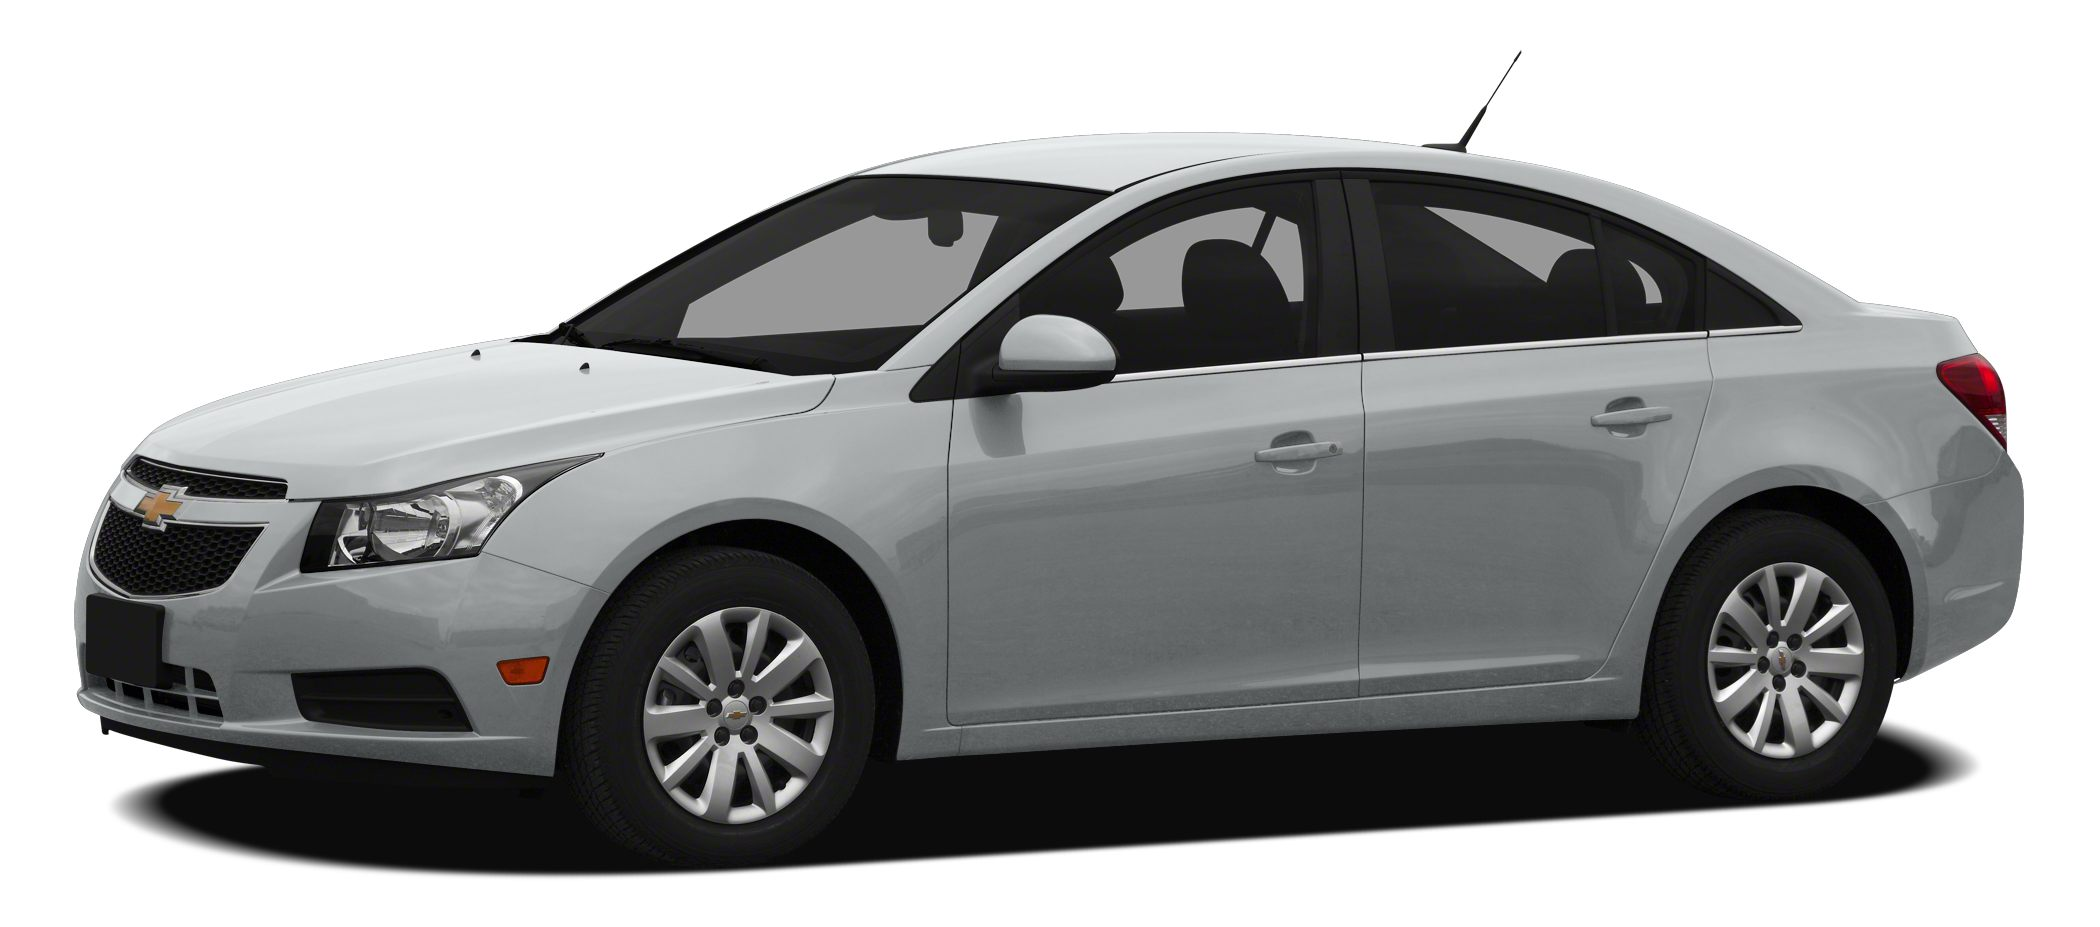 2012 Chevrolet Cruze ECO This is your carSTOP CLICKING NOW Call Internet Manager Frank Winei